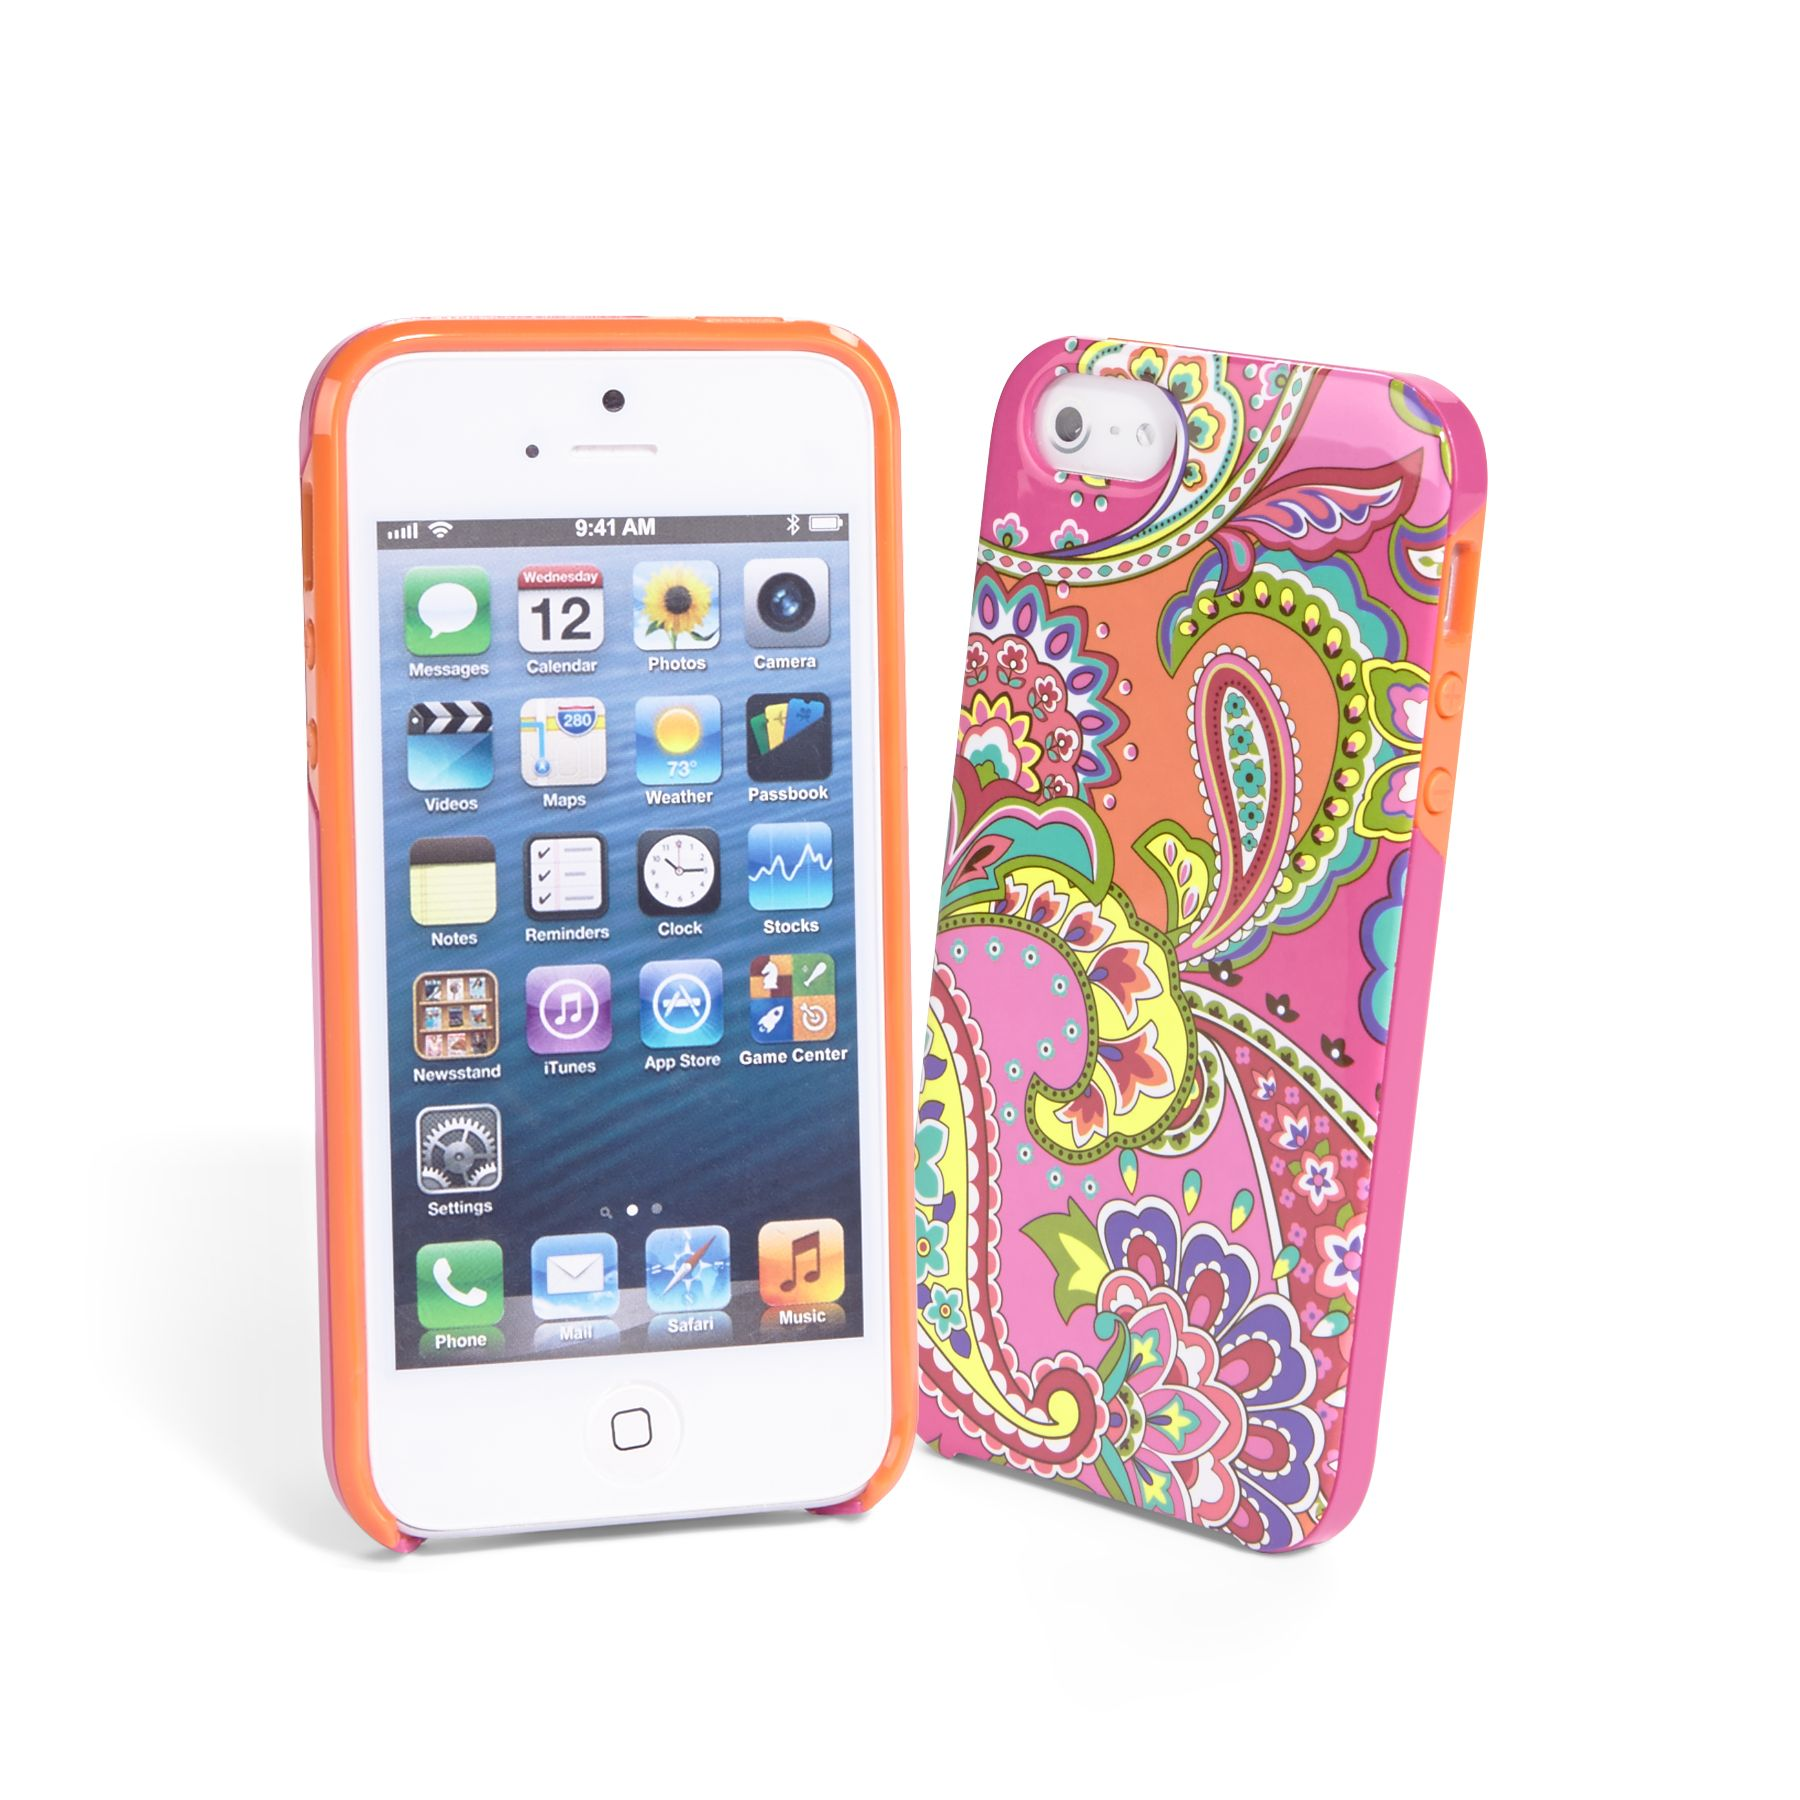 vera bradley iphone 5 case vera bradley hybrid hardshell phone for iphone 5 ebay 18147